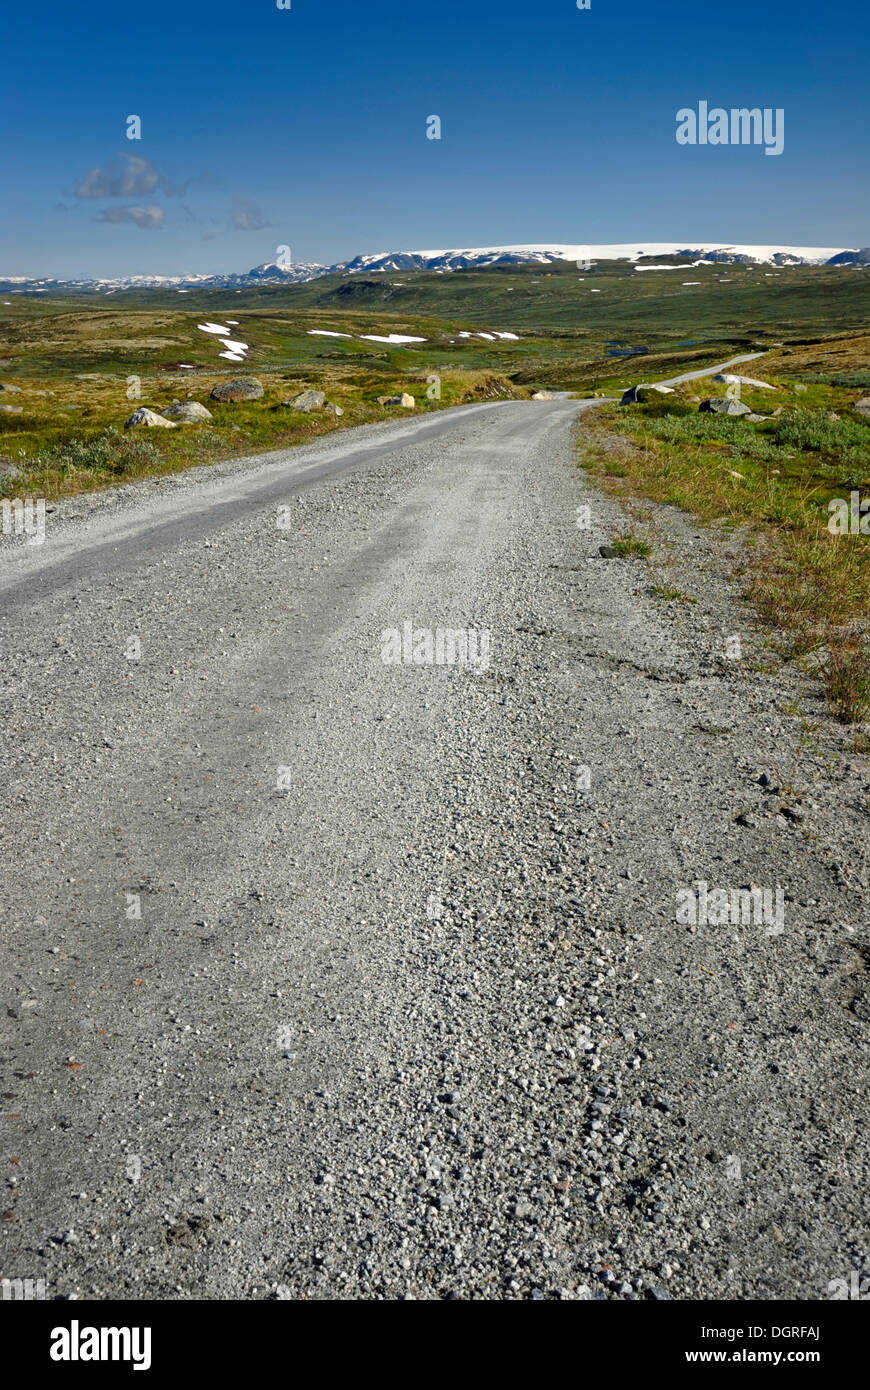 Gravel road on Hardangervidda, Fylke Hordaland, Plateaufjell and Europe's largest high plateau, Norway, Europe Stock Photo